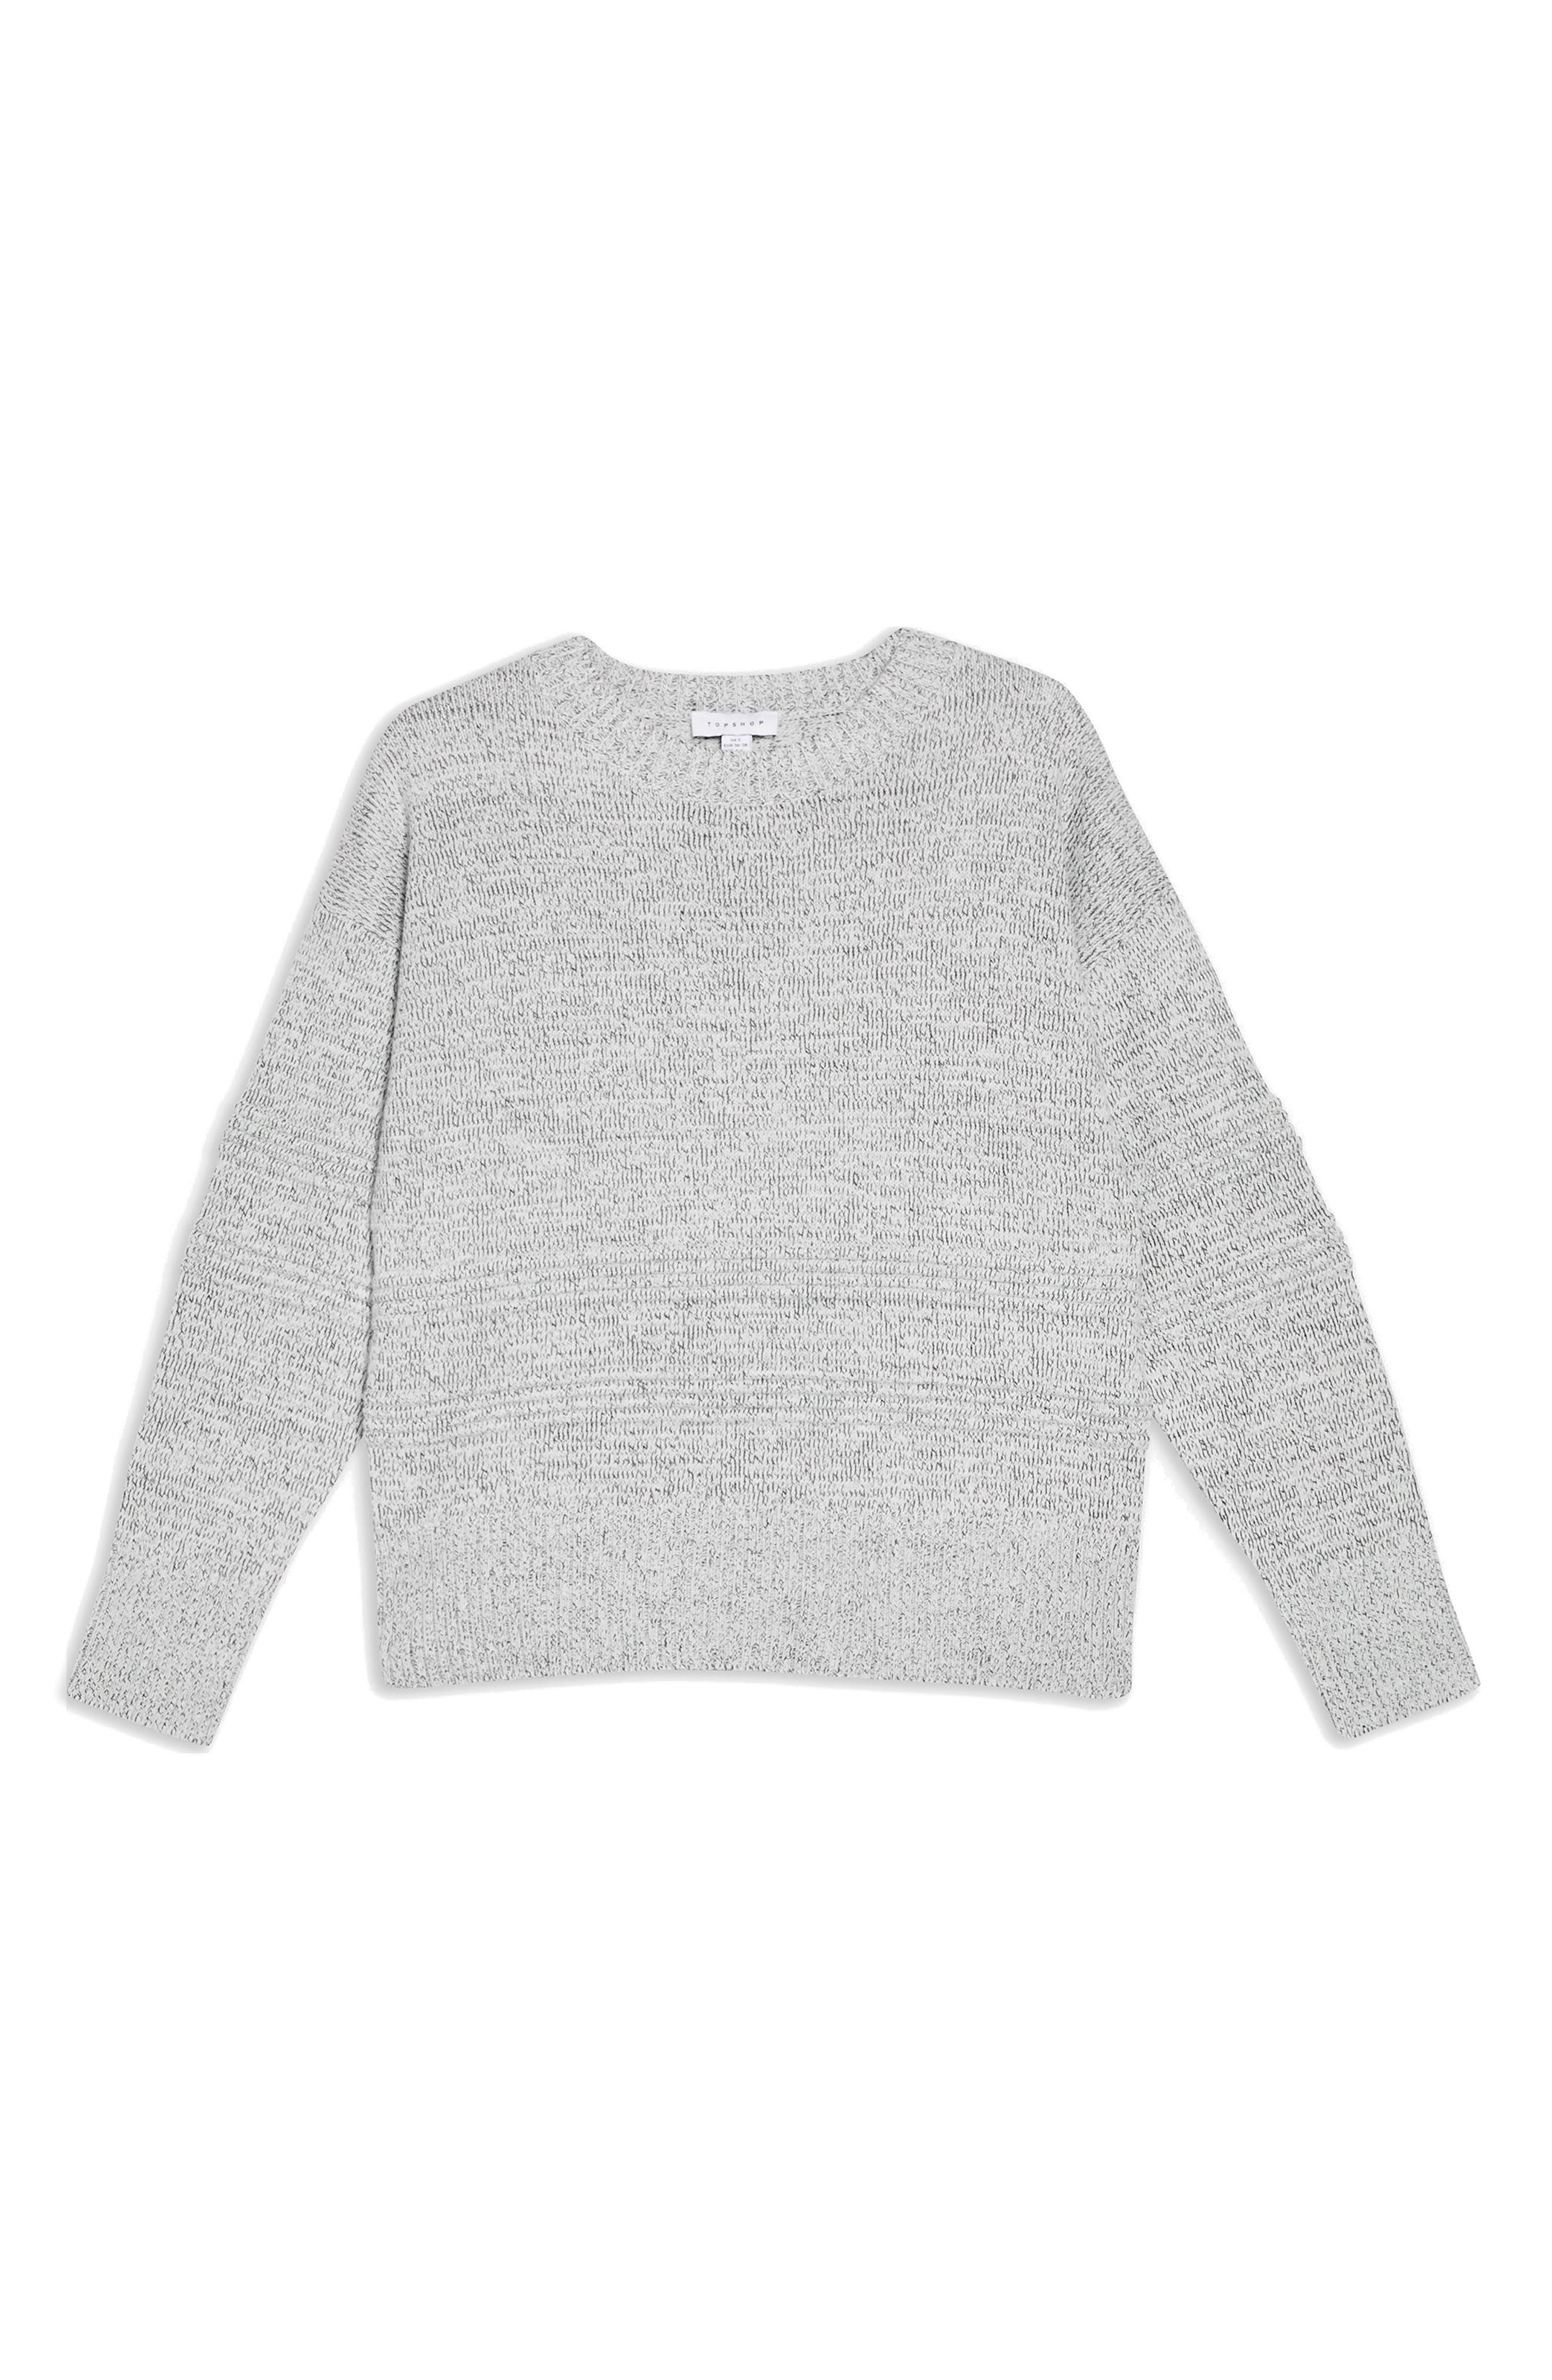 TOPSHOP, Ottoman Stitch Sweater, Alternate thumbnail 3, color, GREY MARL